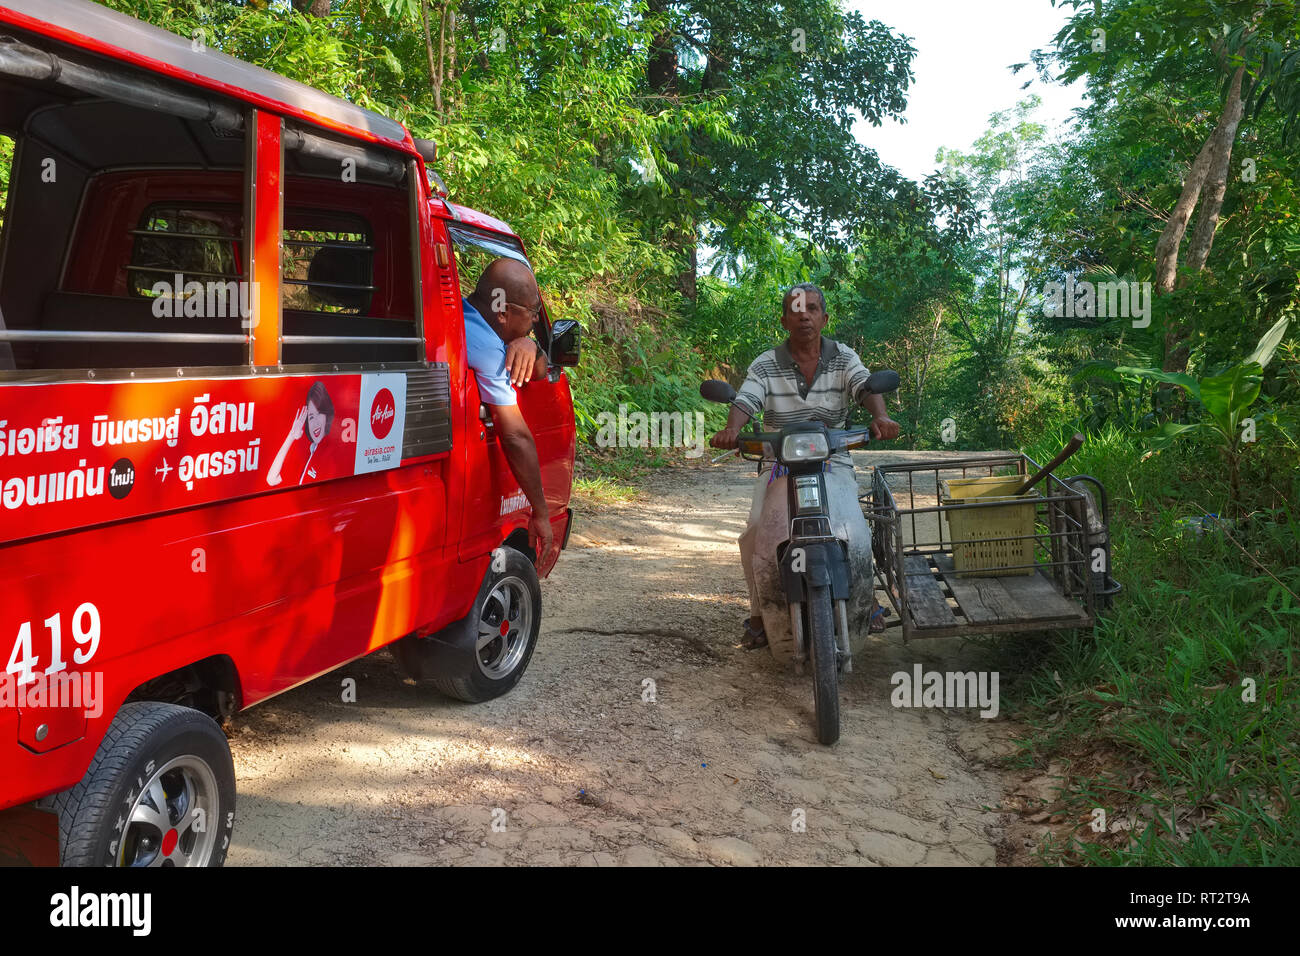 On a jungle path on Phuket island, Thailand, the driver of a tuk-tuk or songthaew (local small bus or van), asks a local rubber tapper for directions - Stock Image